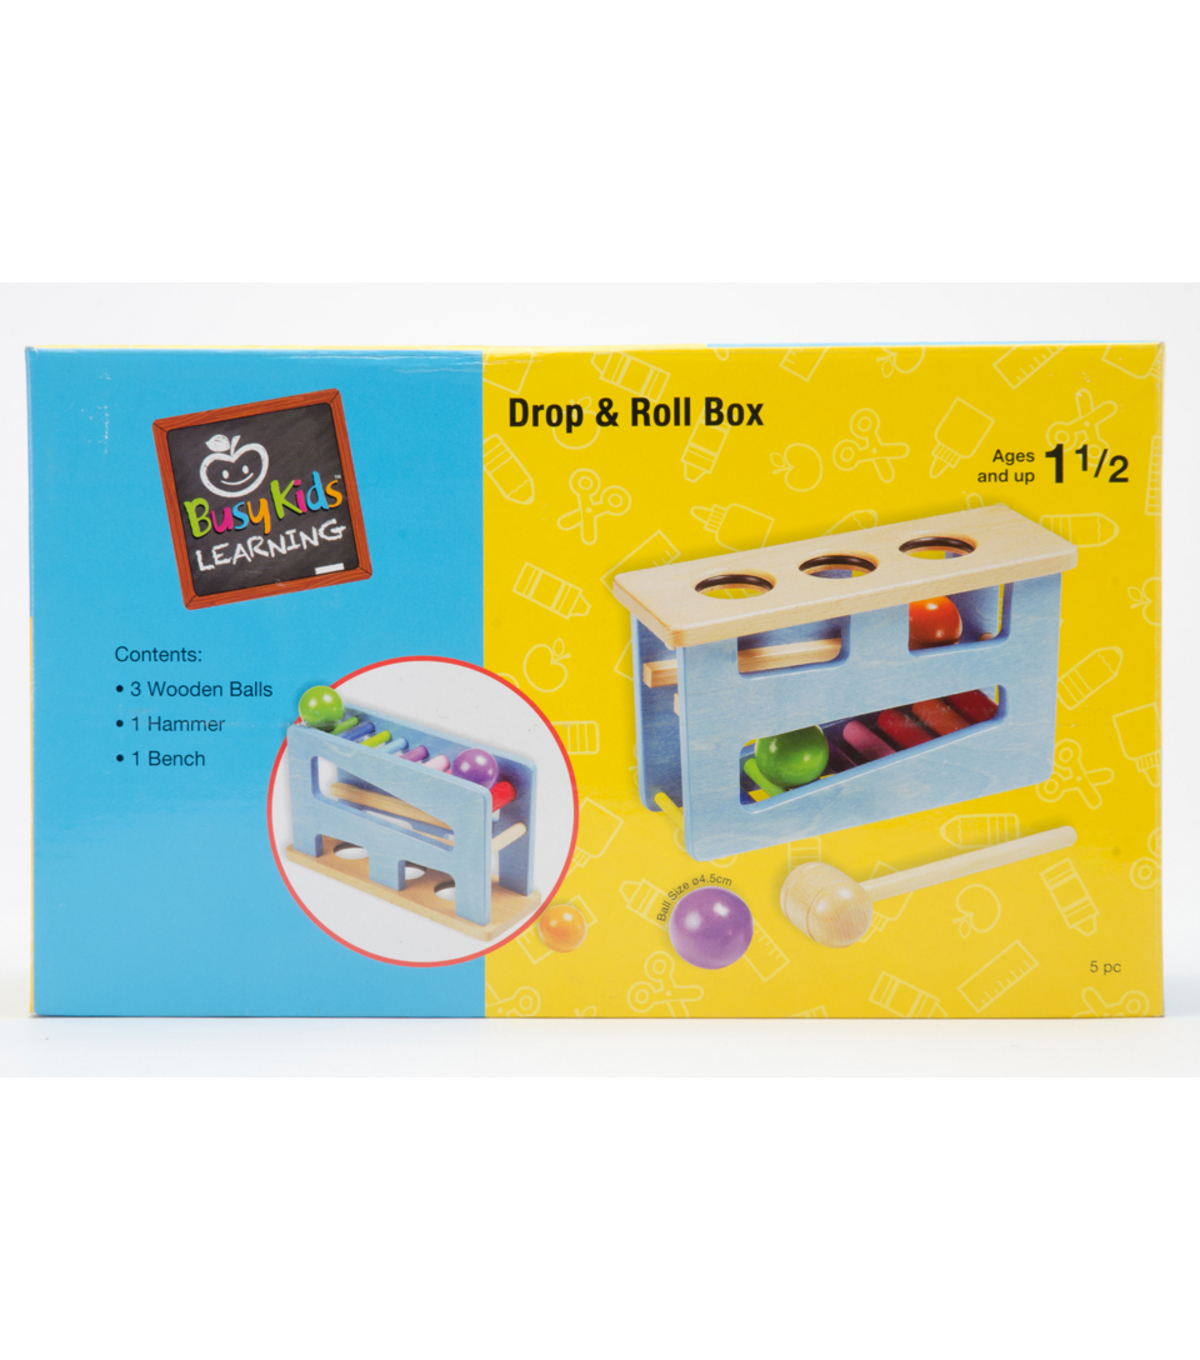 Busy Kids Learning Drop Roll Box